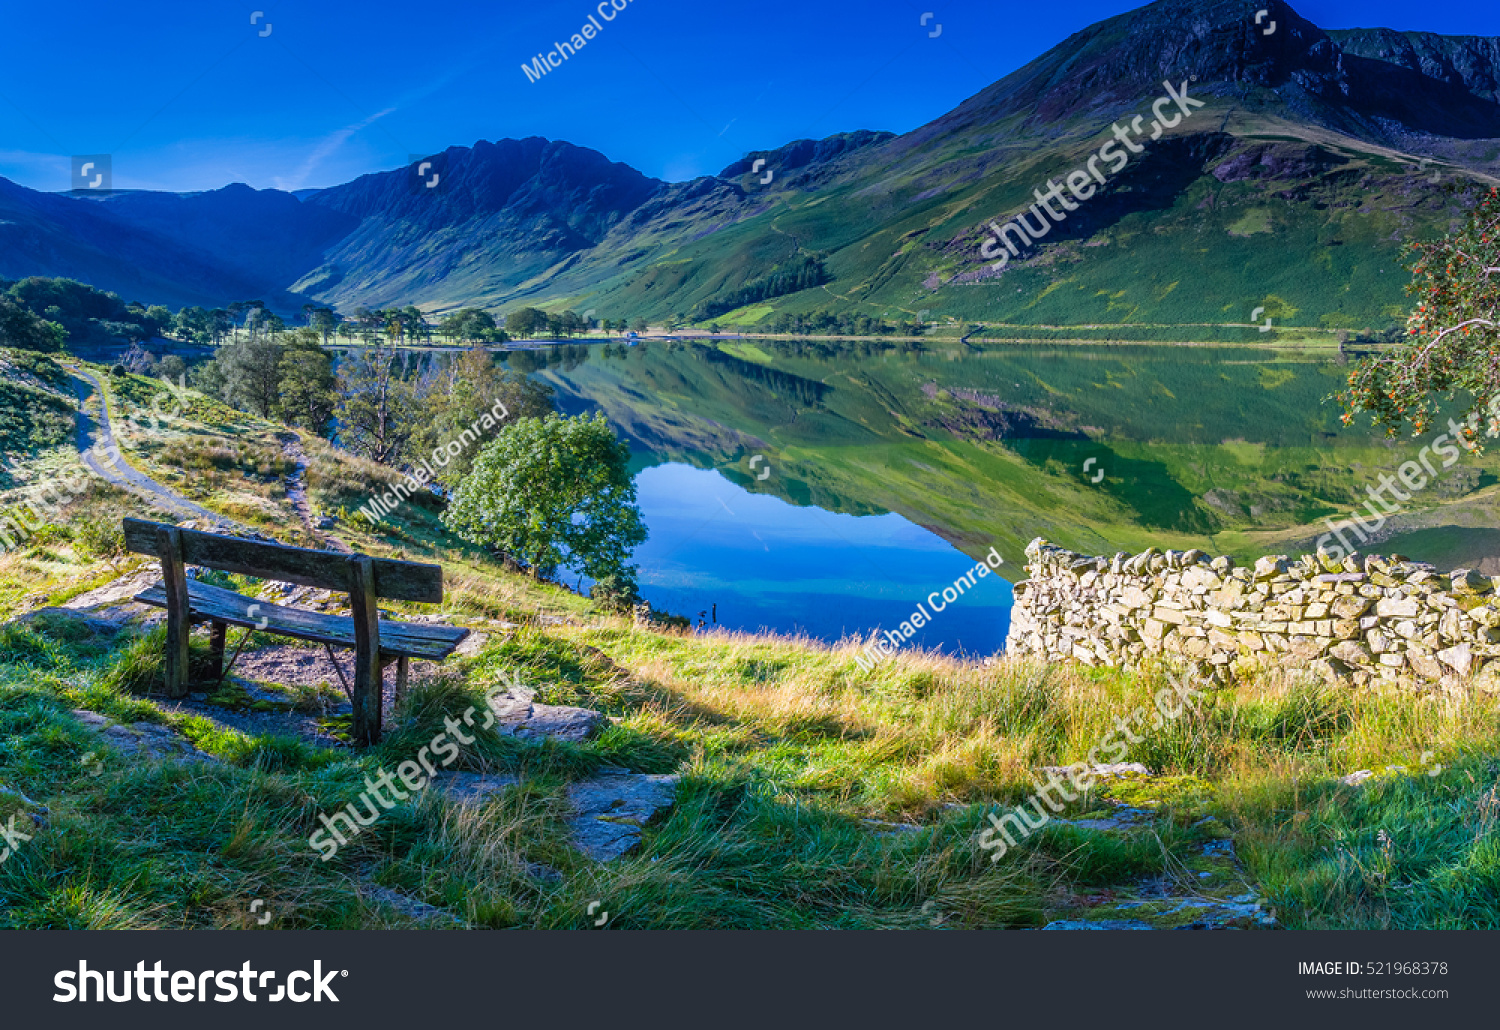 Rest for a moment at Buttermere, The Lake District, Cumbria, England #521968378